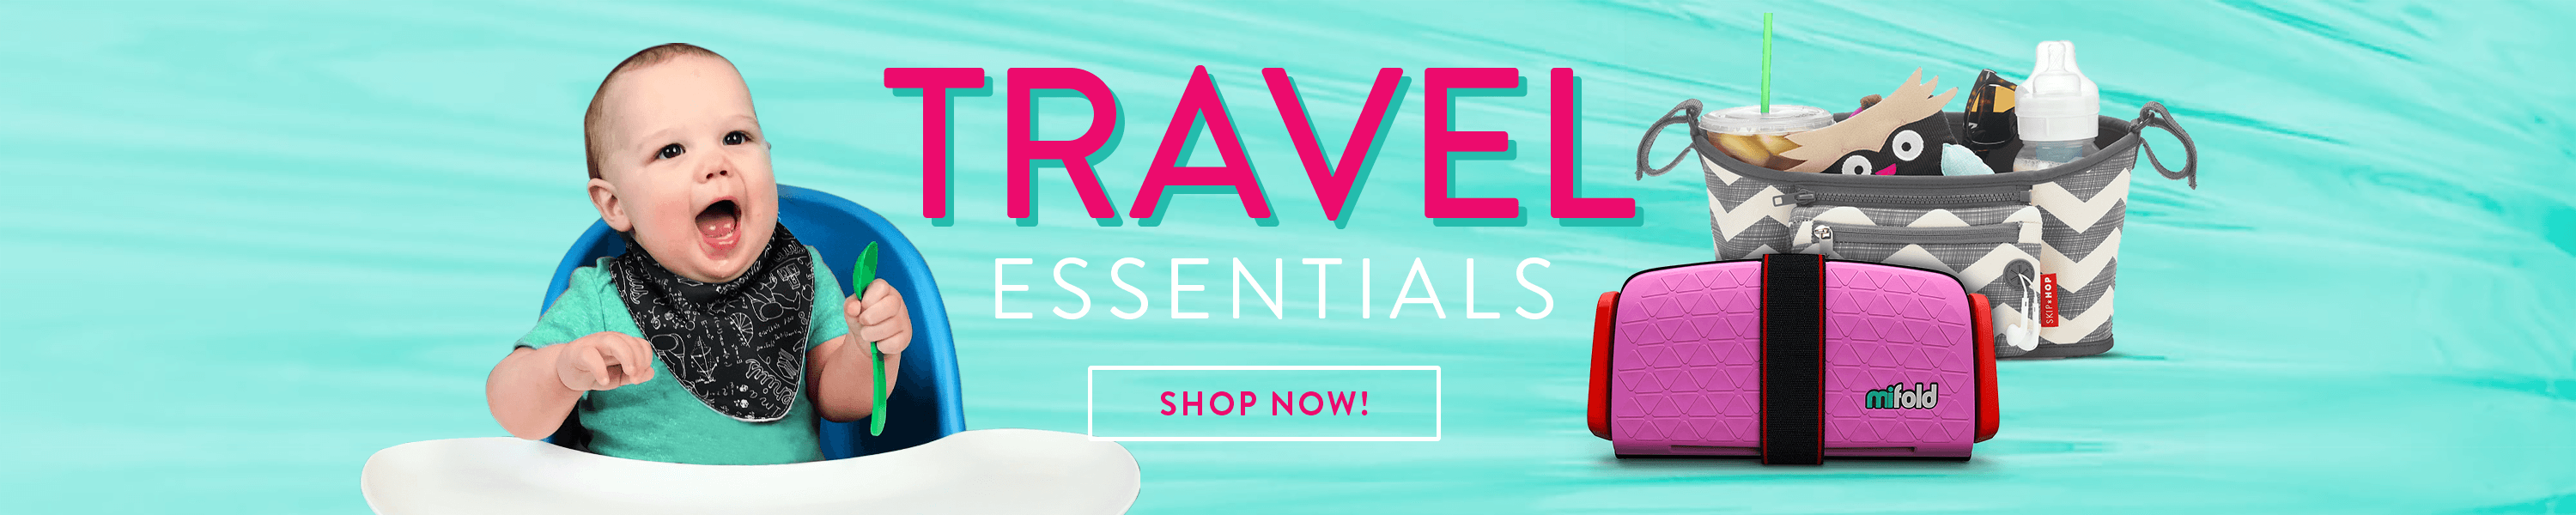 Shop our Travel Essentials booster seats, toys, and more